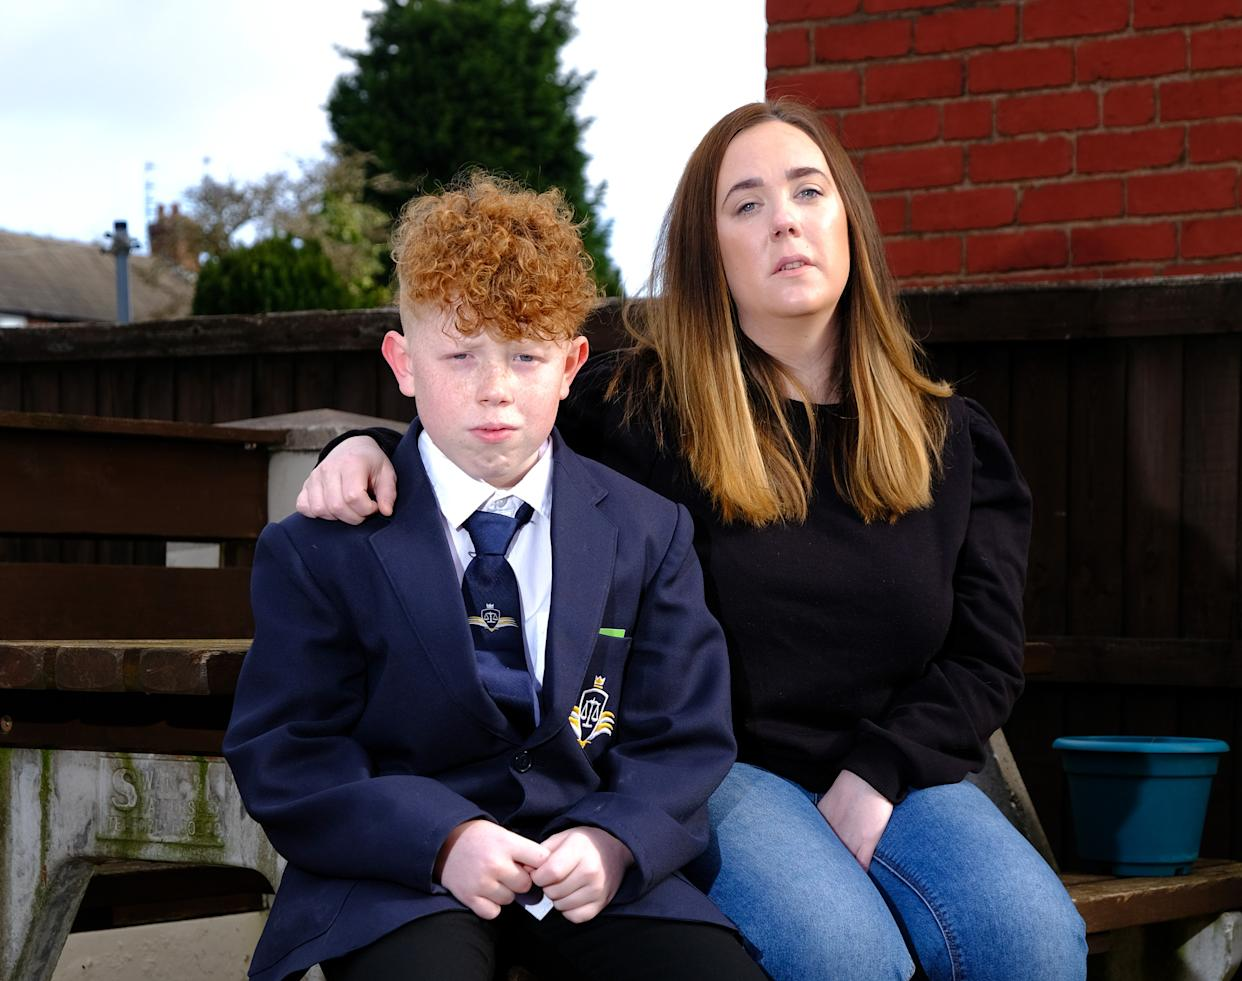 Niall Clews (12) from Birmingham has been put into isolation by his school, St Michael's Church of England High School as they said his lockdown haircut by mum Hannah (33), was too short.